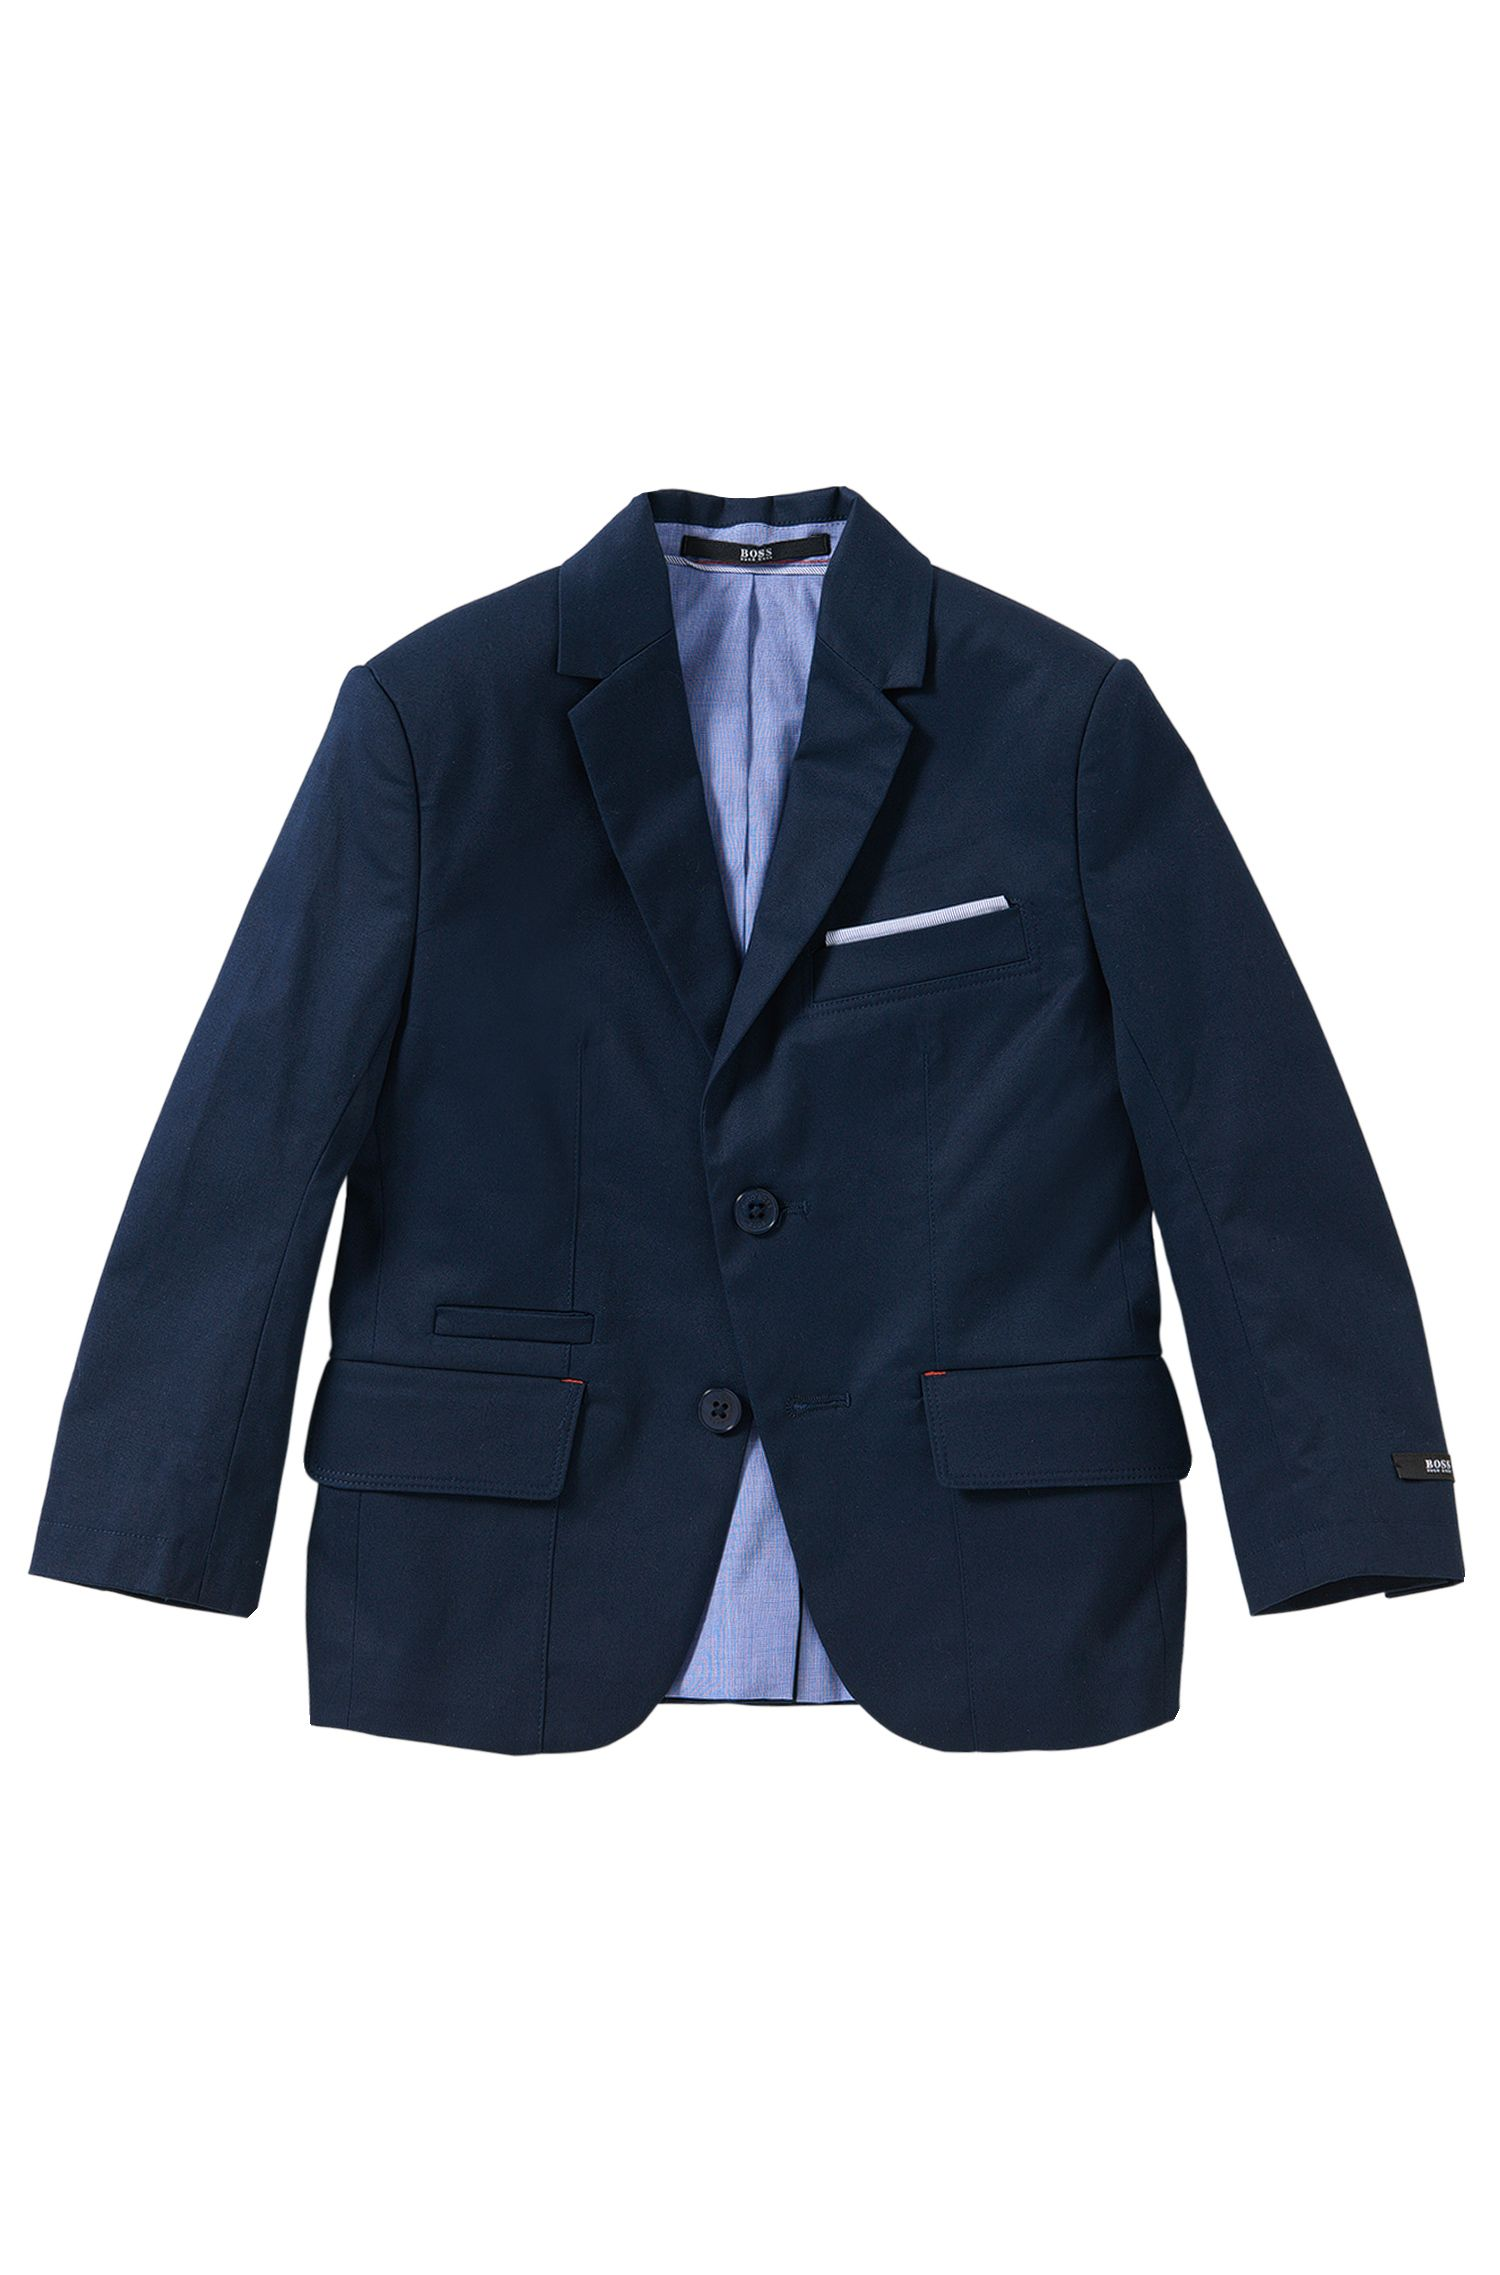 Kids' jacket in stretch cotton with integral pocket square: 'J26275'